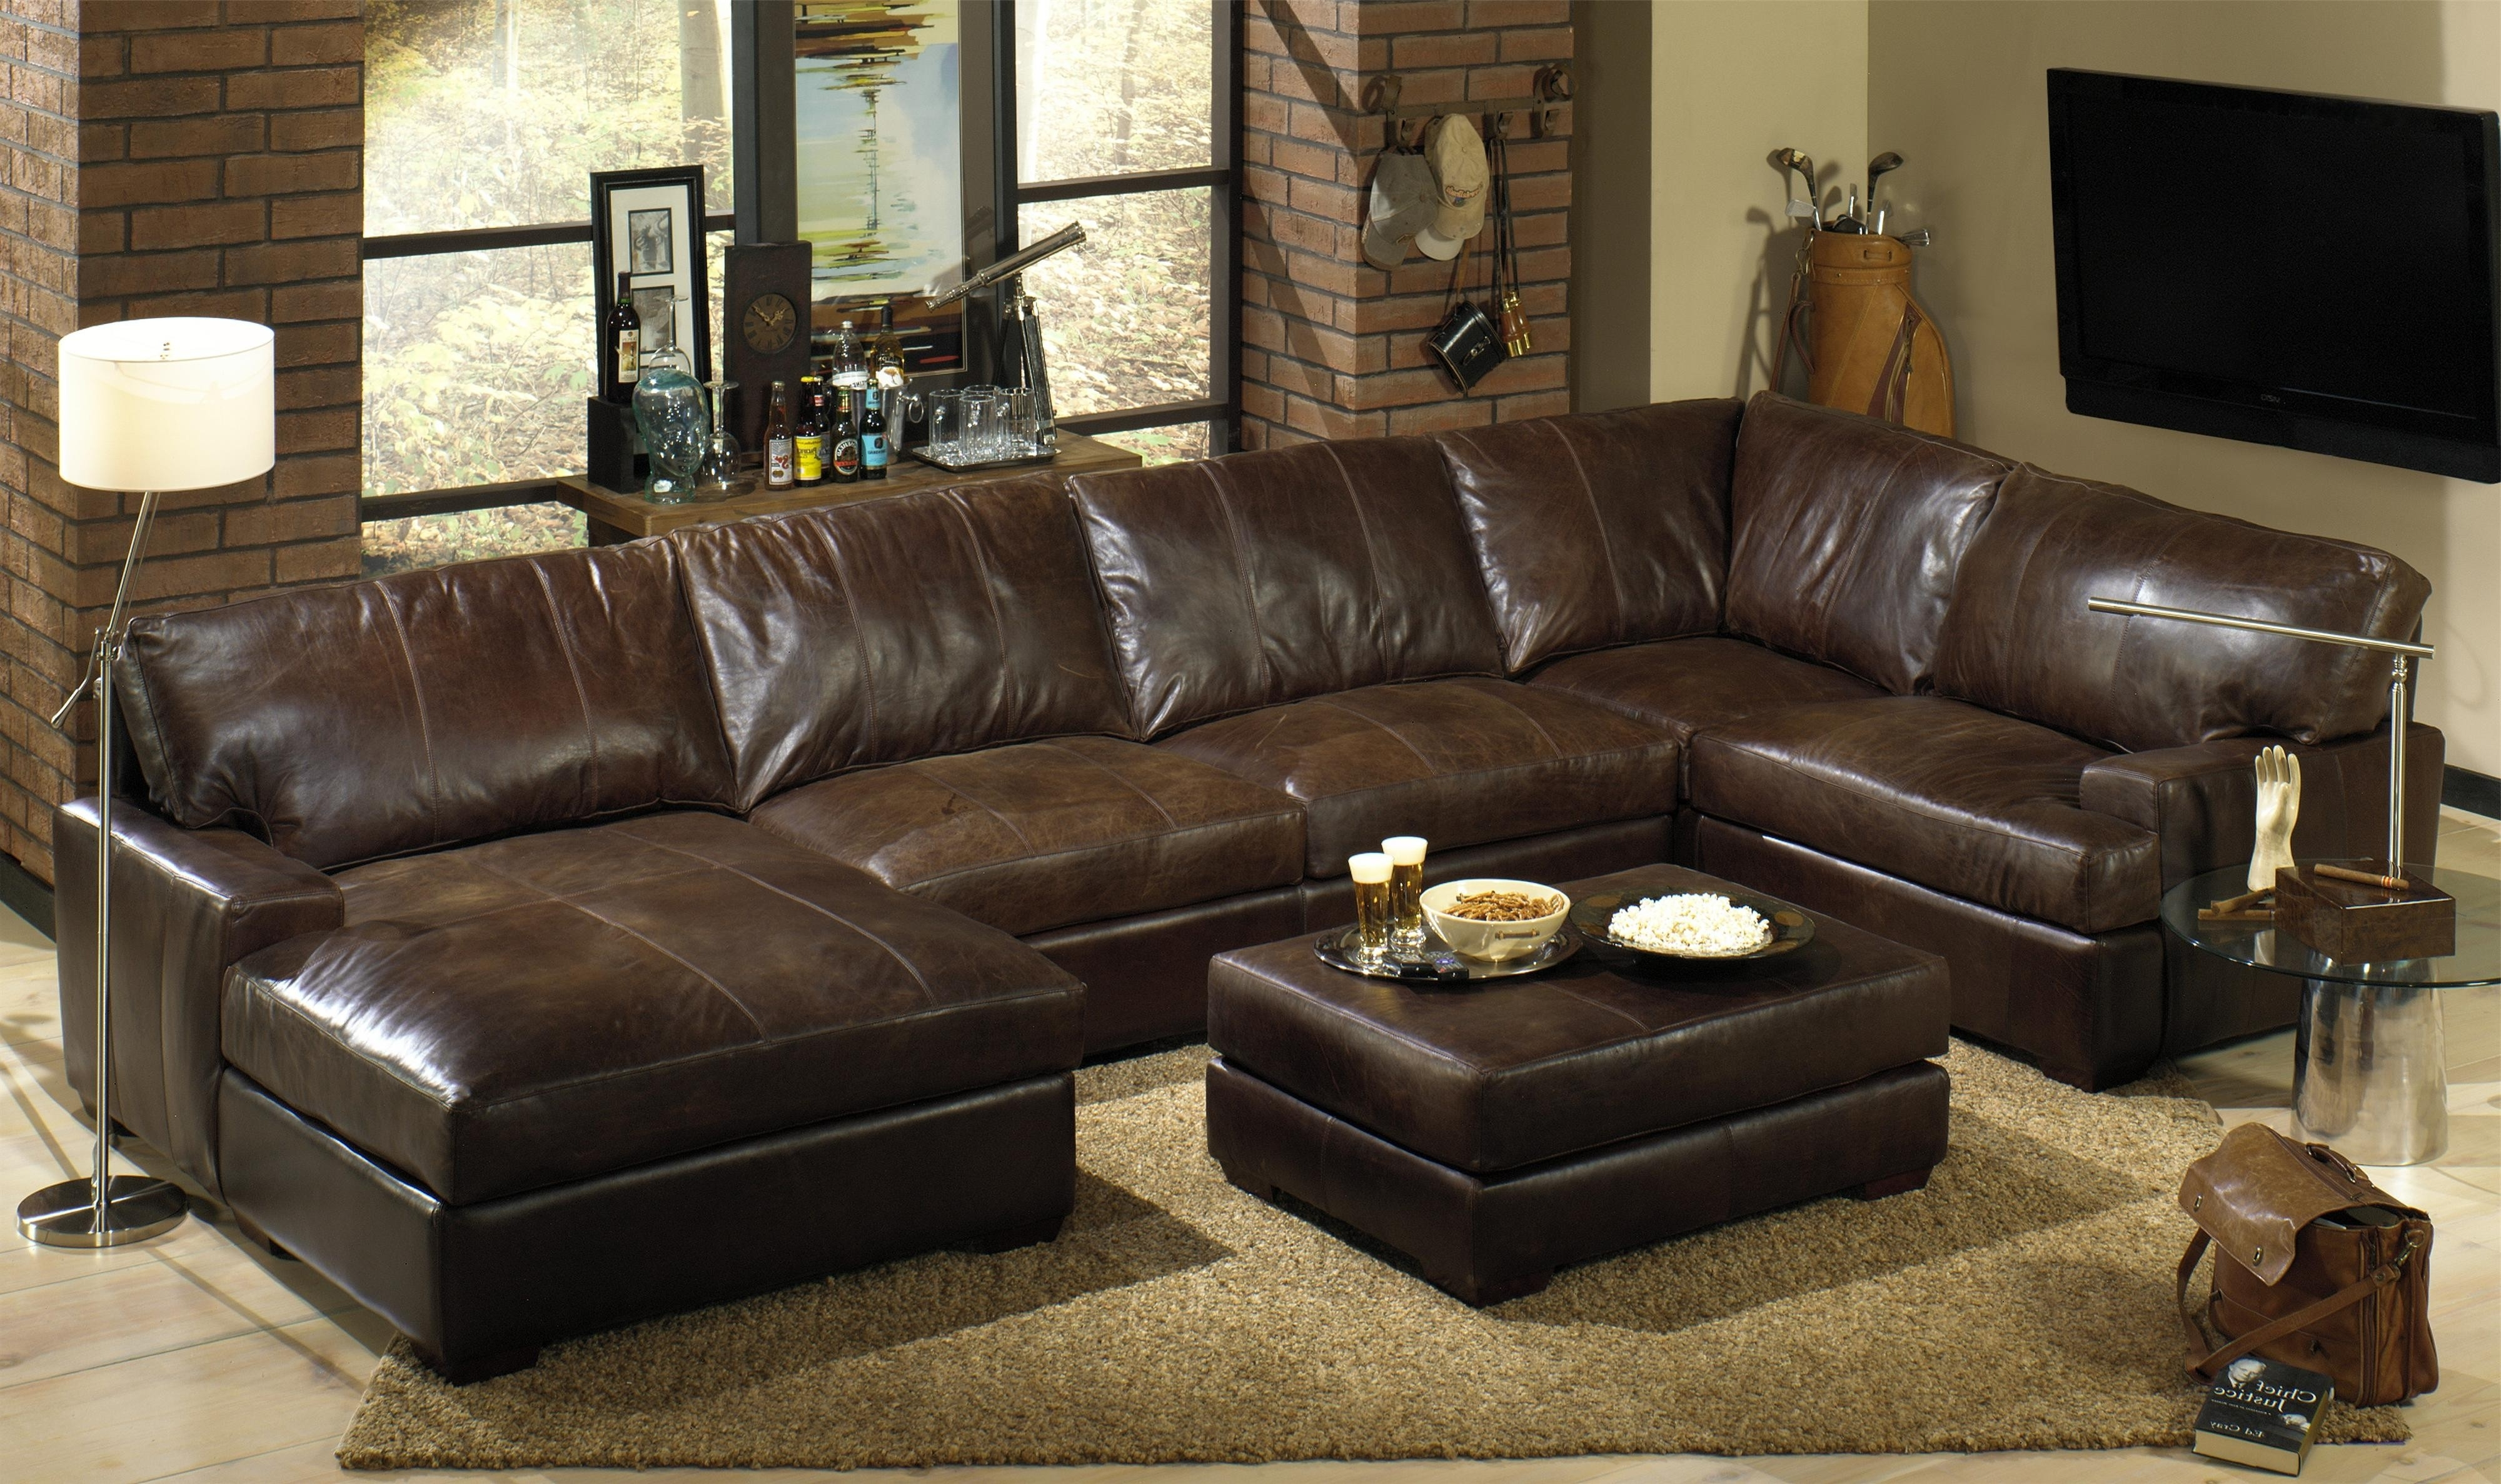 Leather Sectional Sofa Birmingham Al (View 7 of 15)